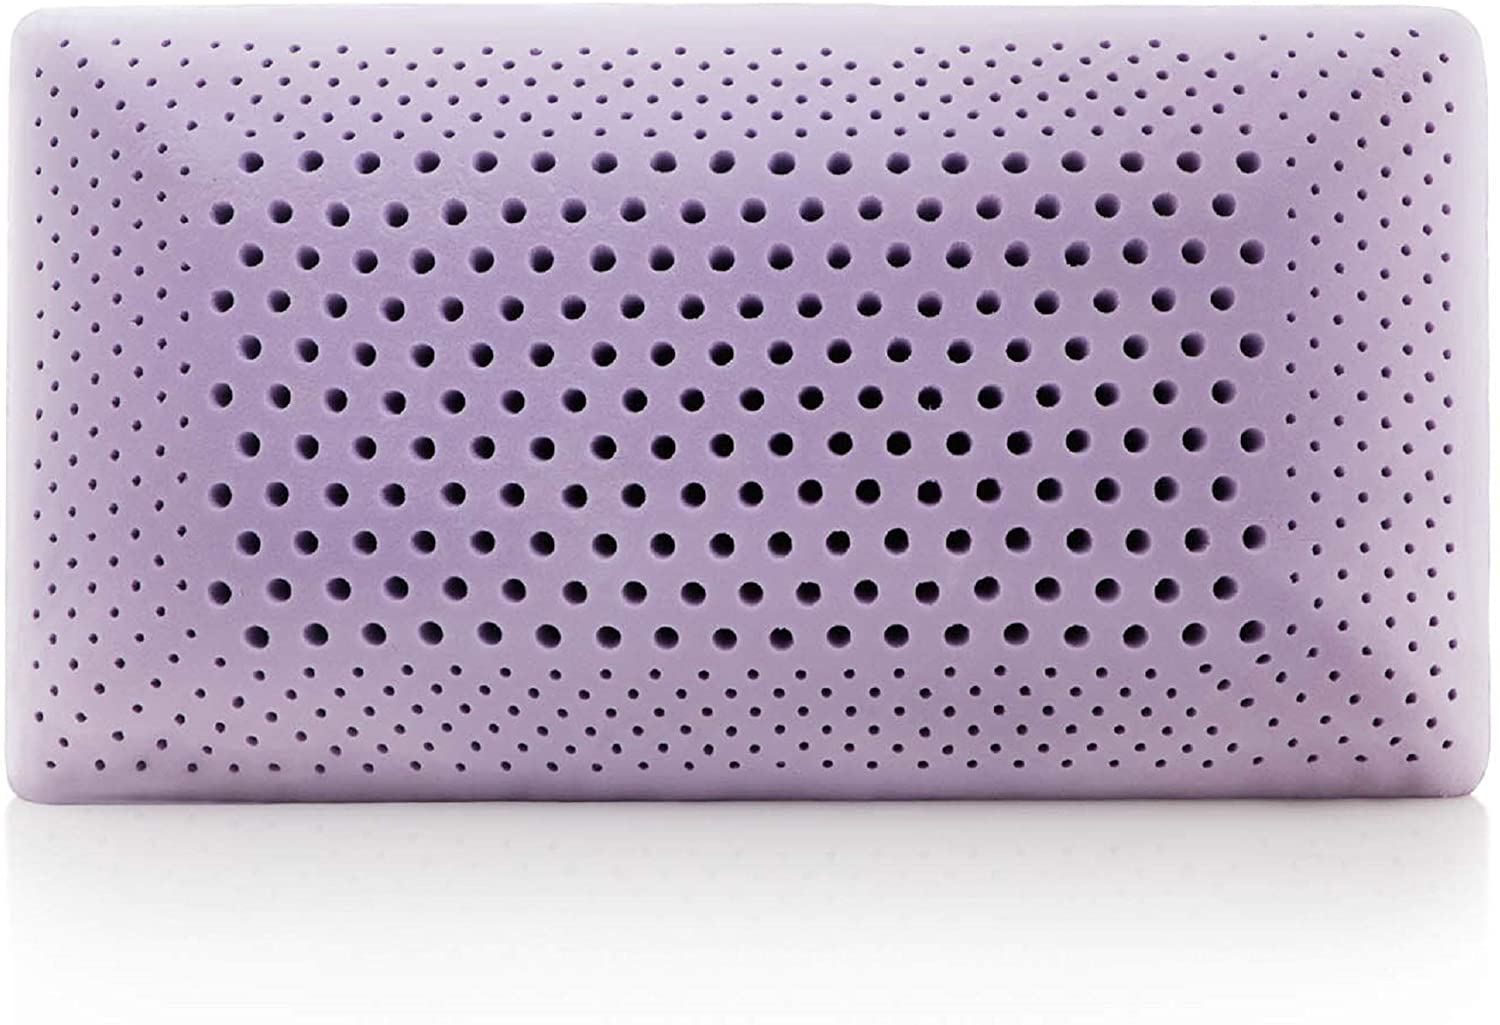 review over the zoned lavender pillow by malouf